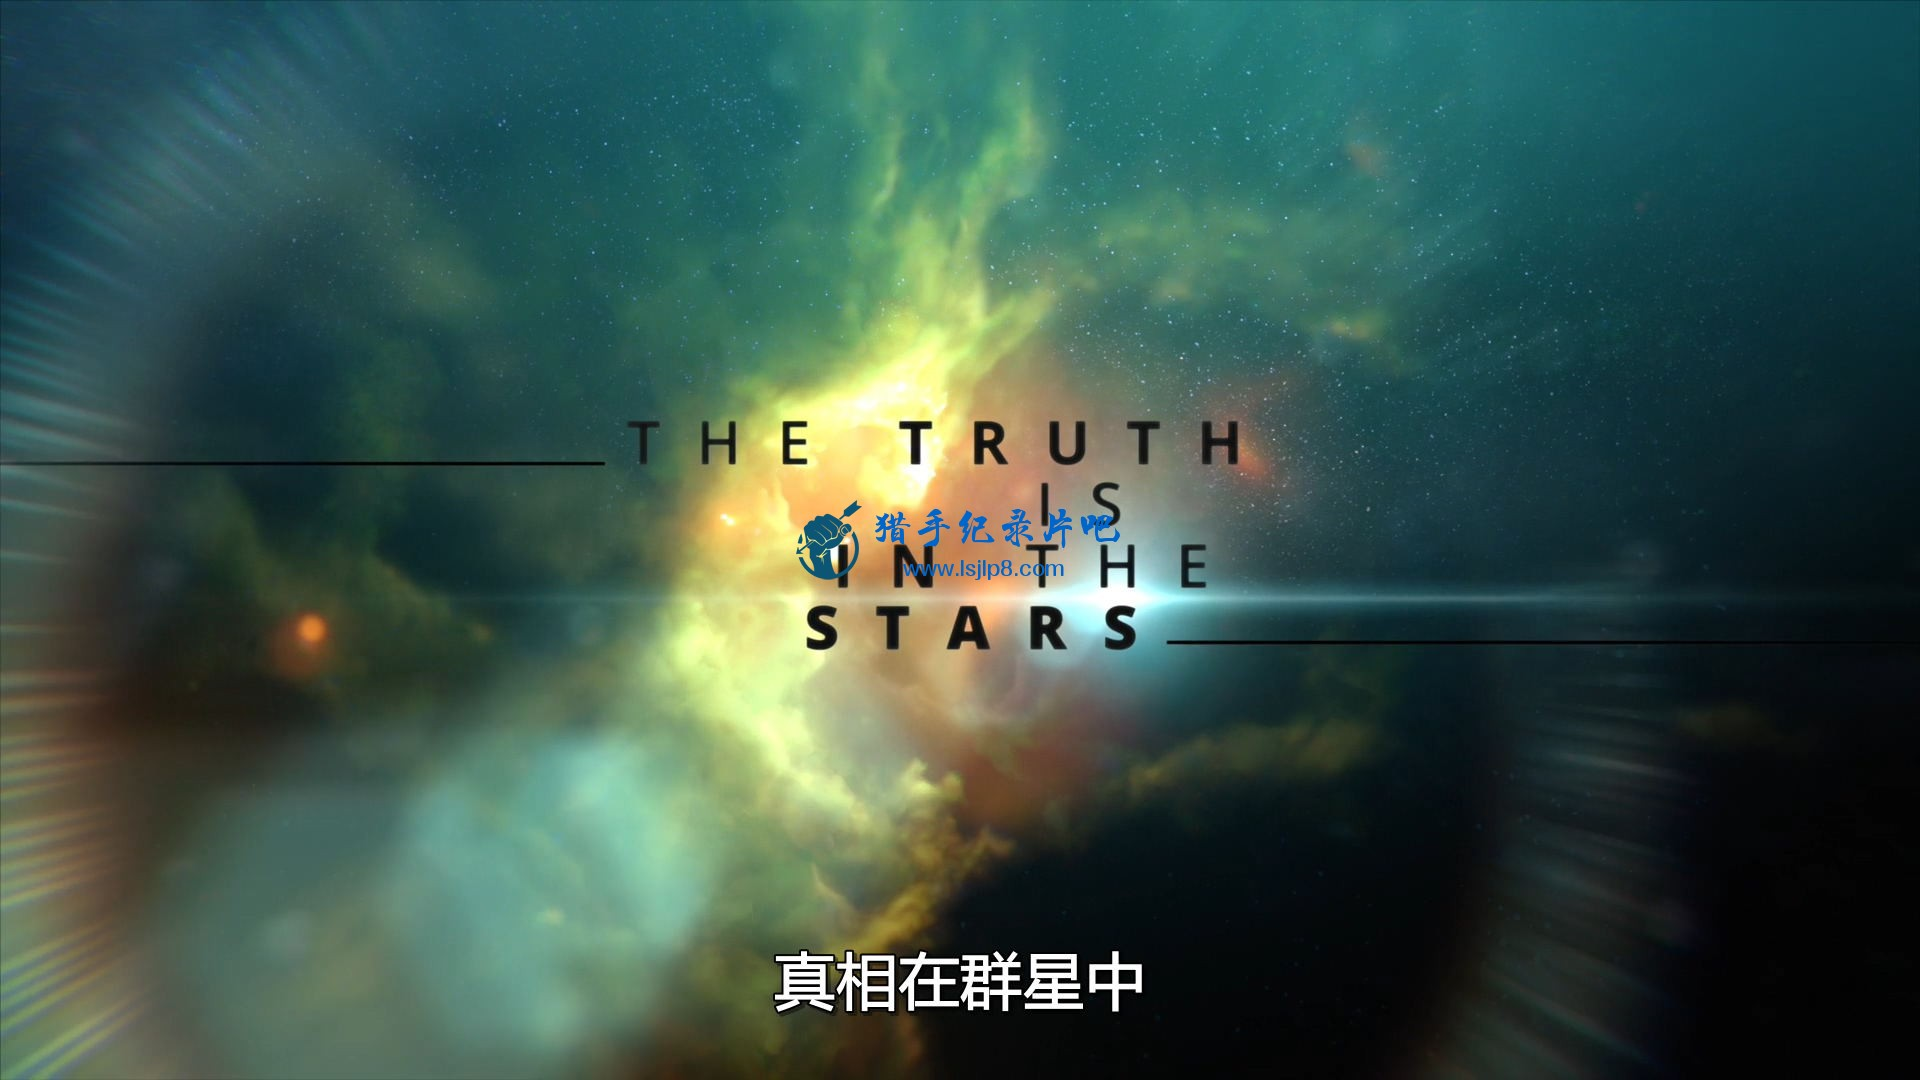 The.Truth.Is.in.the.Stars.2017.1080p.NF.WEBRip.DD5.1.x264-monkee.mkv_20200628_13.jpg